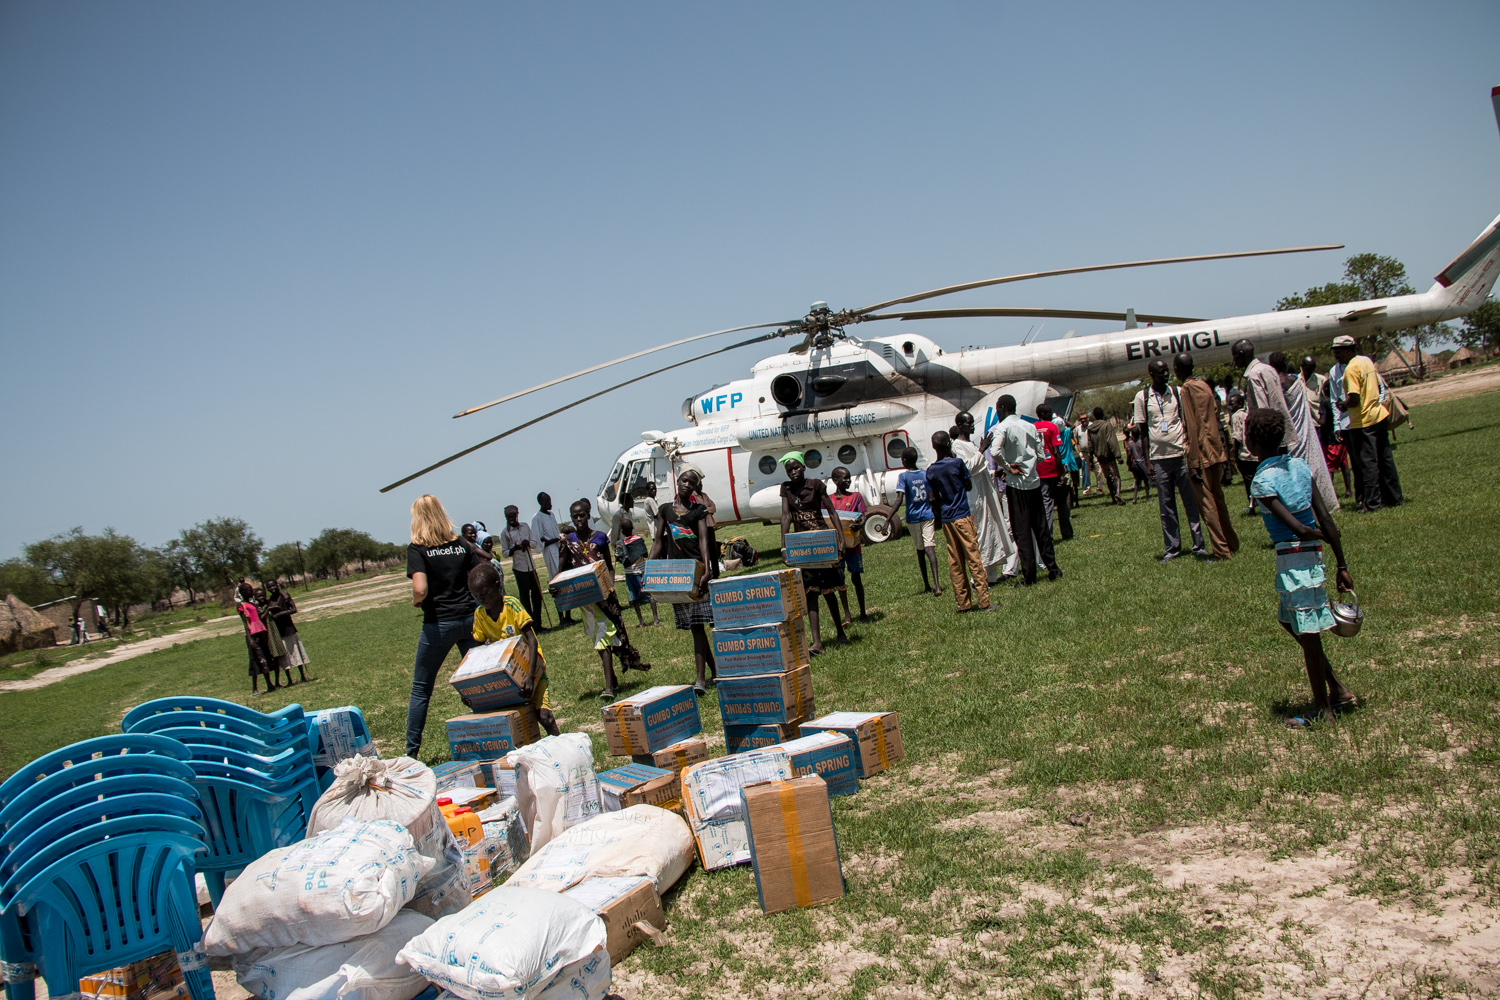 A crisis response team landed in the swamplands of Jonglei state by helicopter in order to provide up to 54,000 people with emergency aid [Ashley Hamer/Al Jazeera]